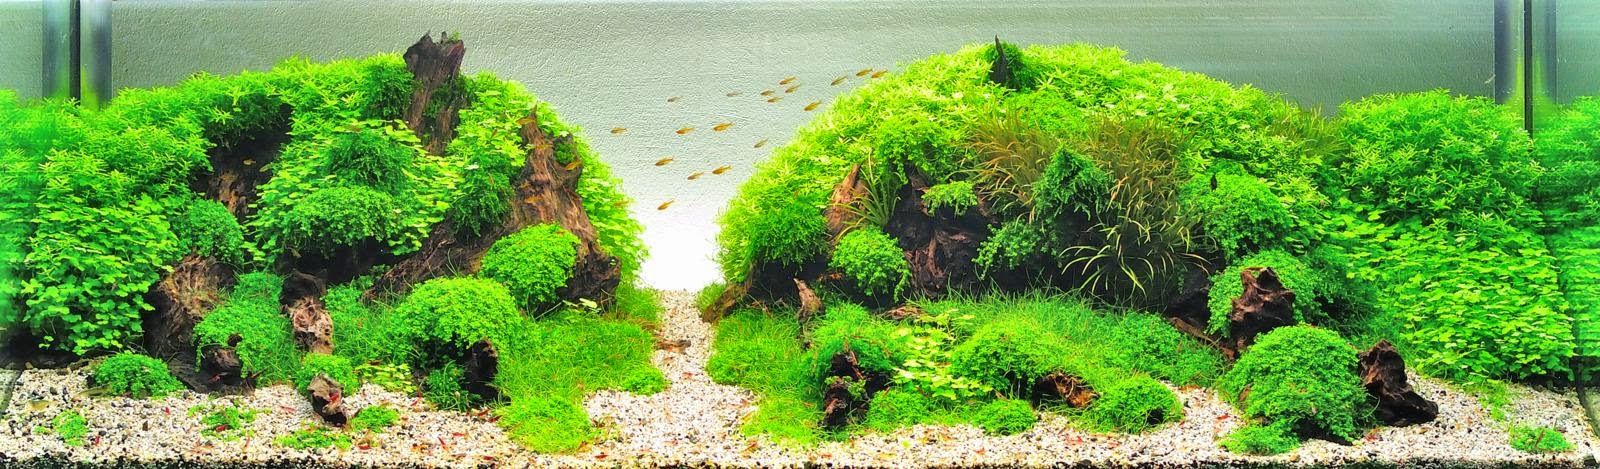 Aquascaping spain julio 2014 - Aquascape espana ...